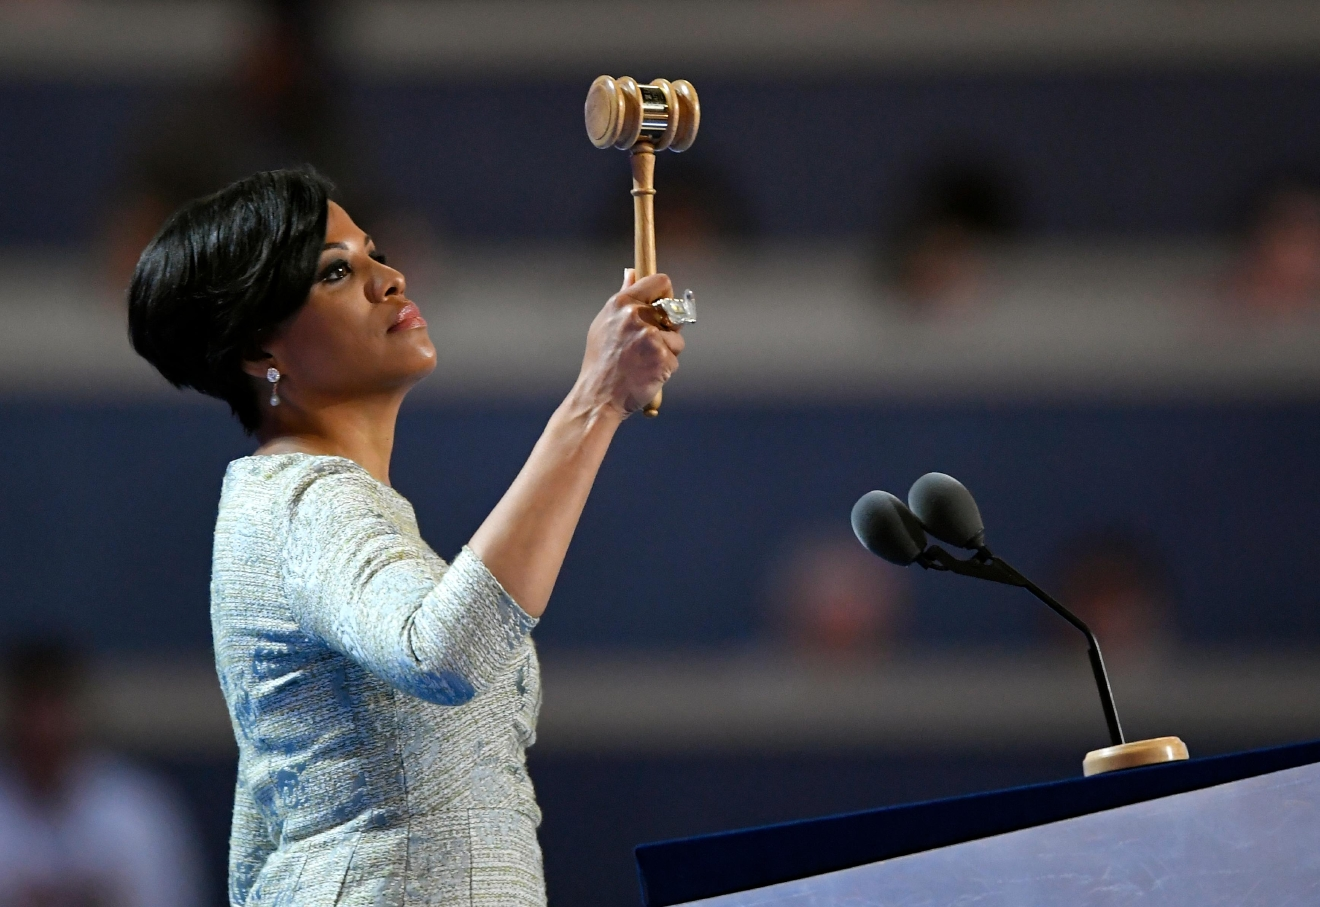 Baltimore mayor Stephanie Rawlings-Blake raises the gavel as she calls the convention to order during the first day of the Democratic National Convention in Philadelphia , Monday, July 25, 2016. (AP Photo/Mark J. Terrill)